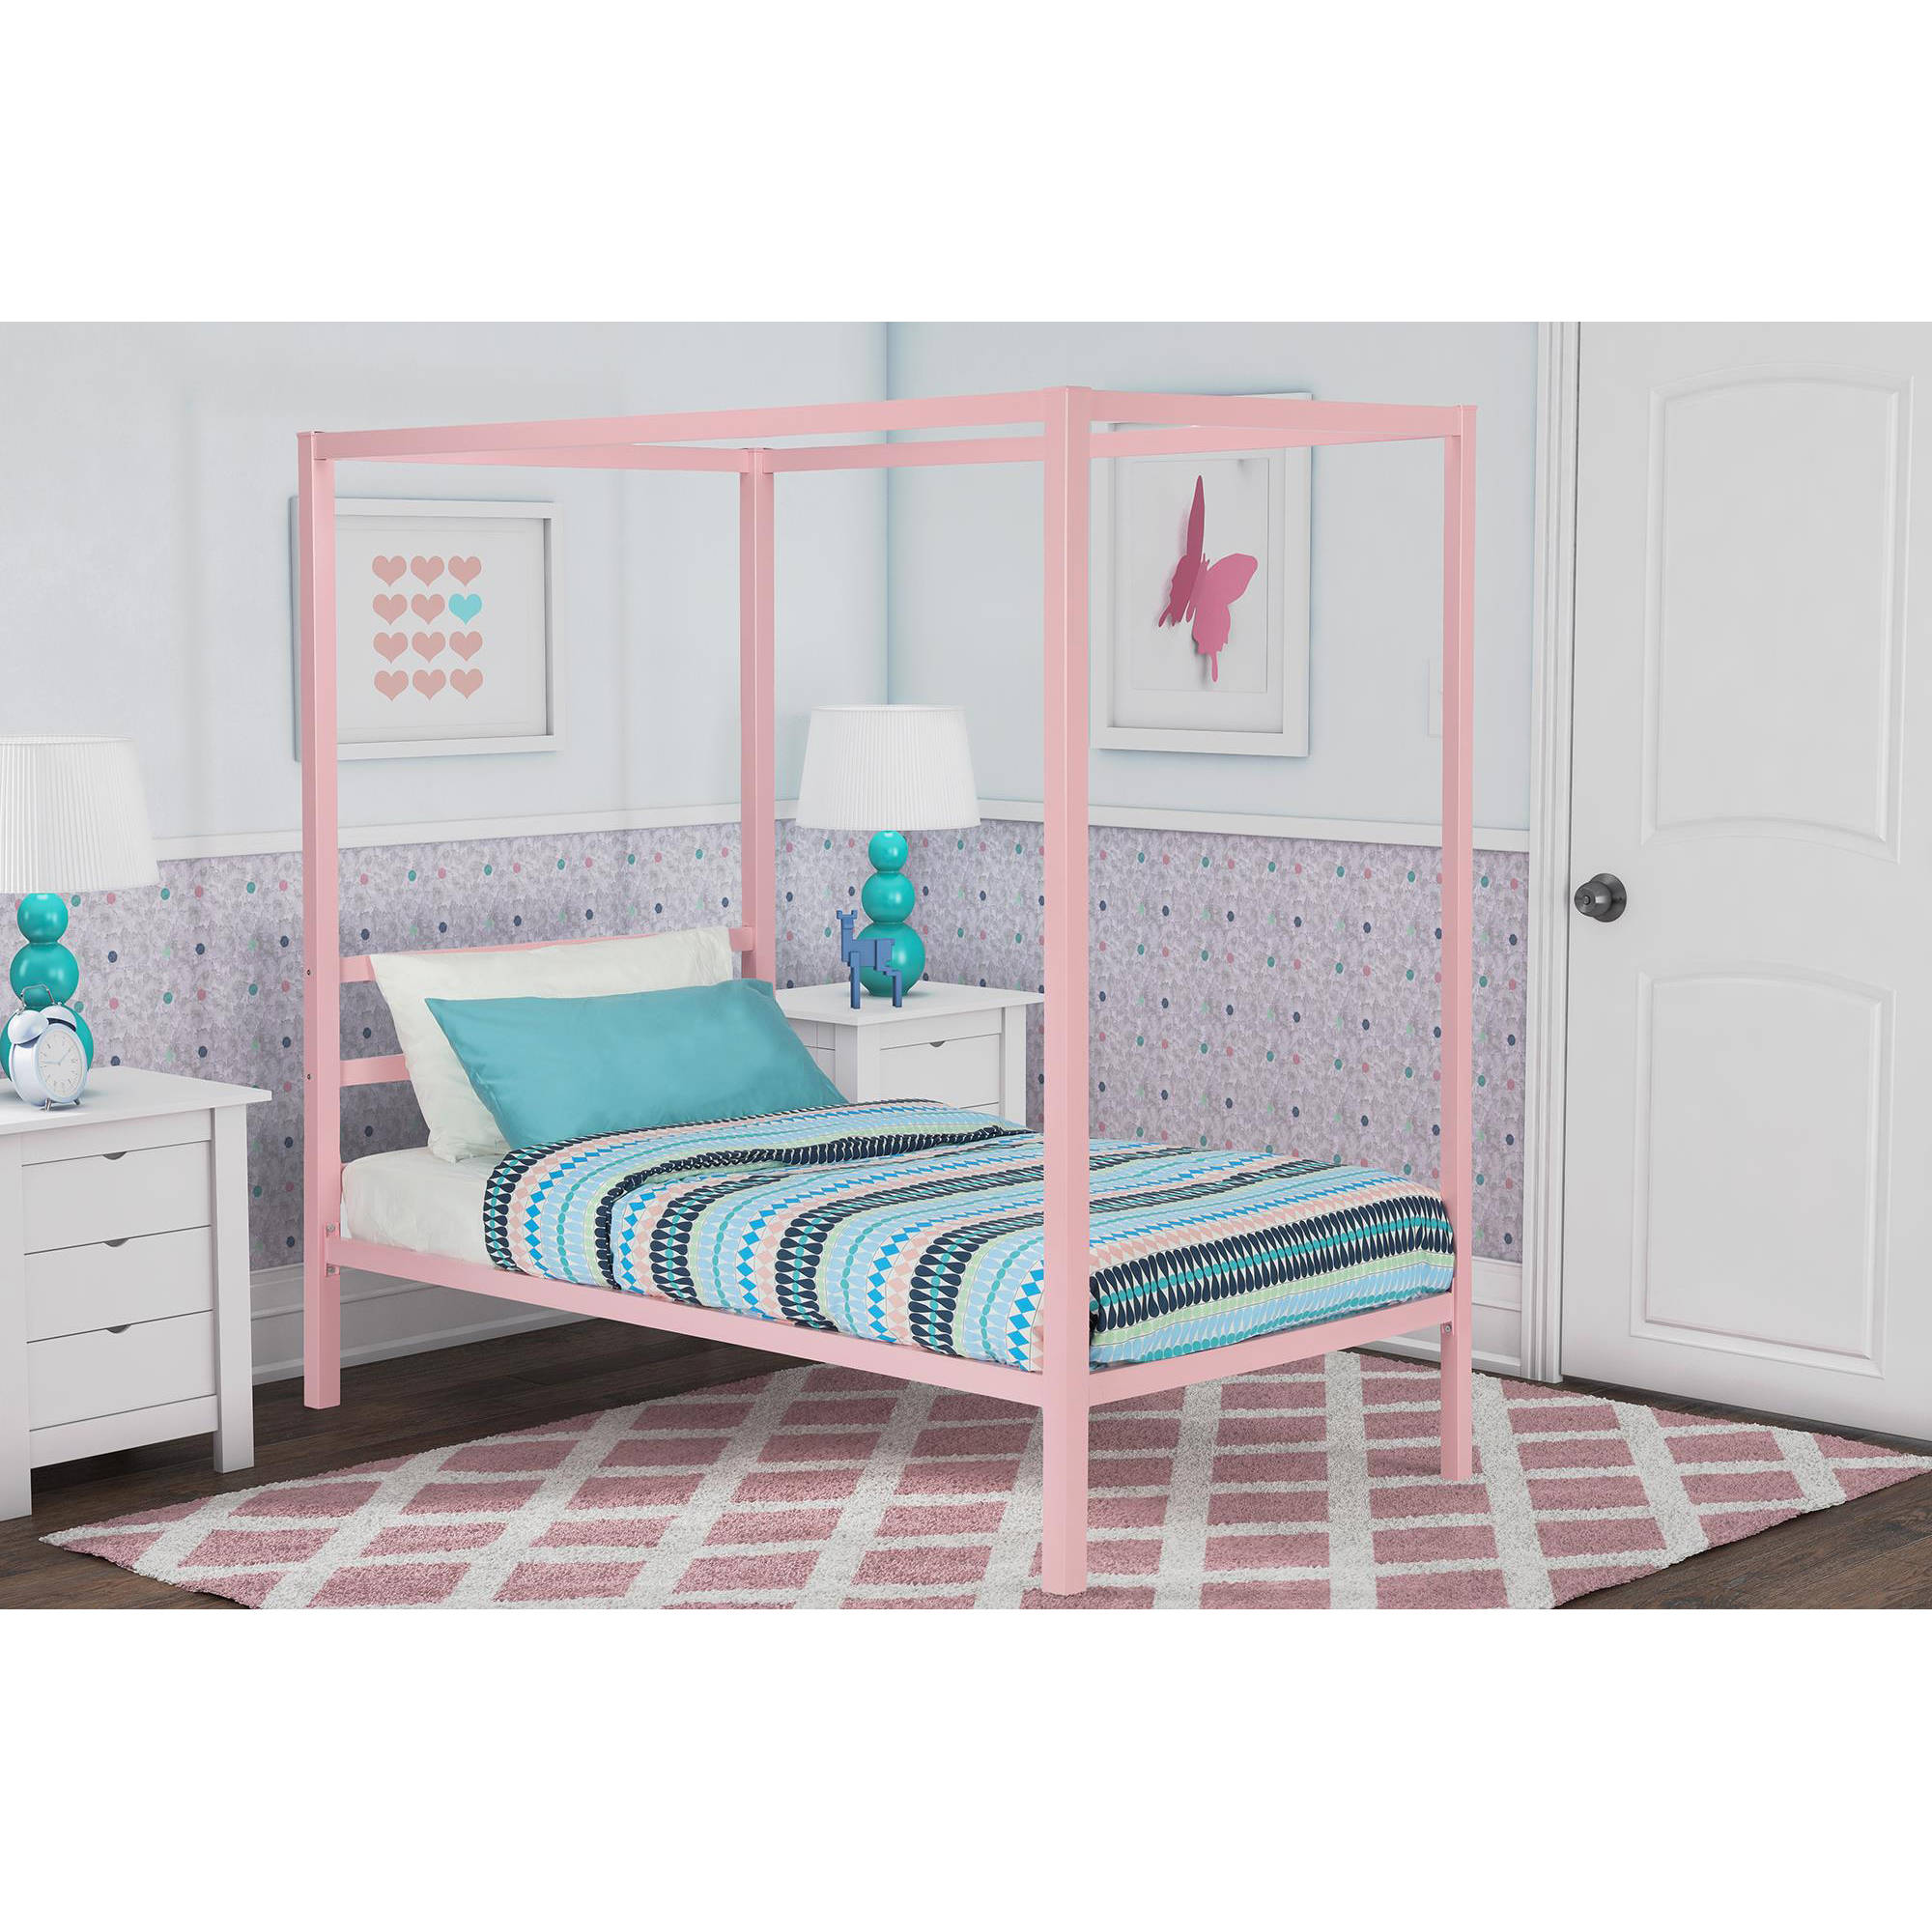 DHP Modern Metal Twin Canopy Bed in Pink Rose Quartz | eBay